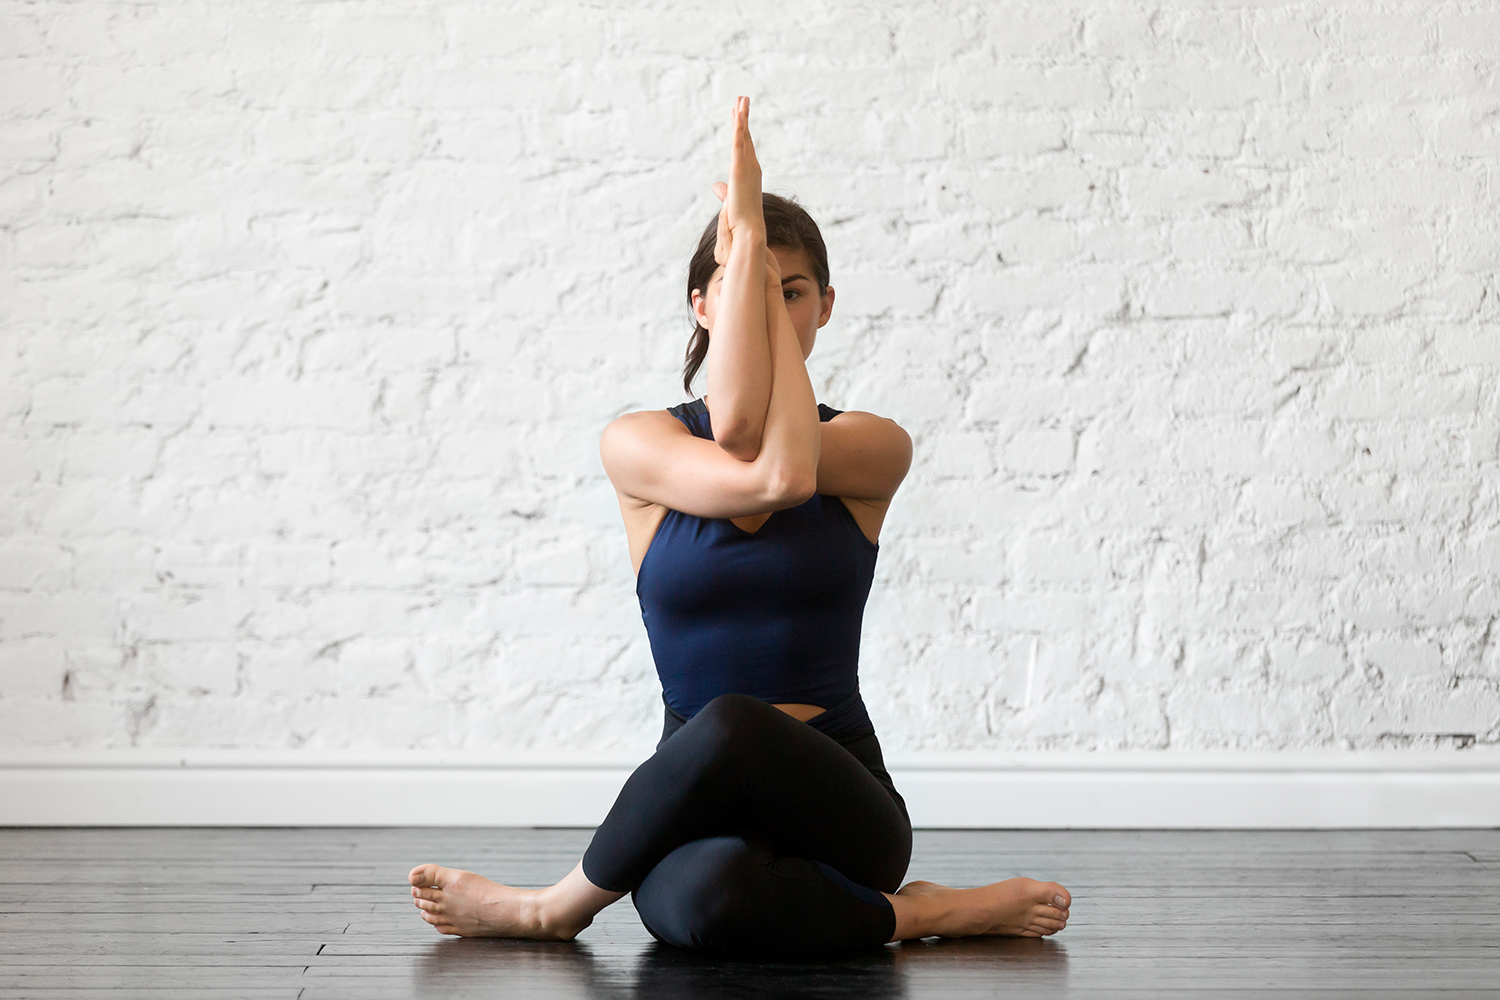 A-Yin-Yoga-Sequence-To-Balance-Align-The